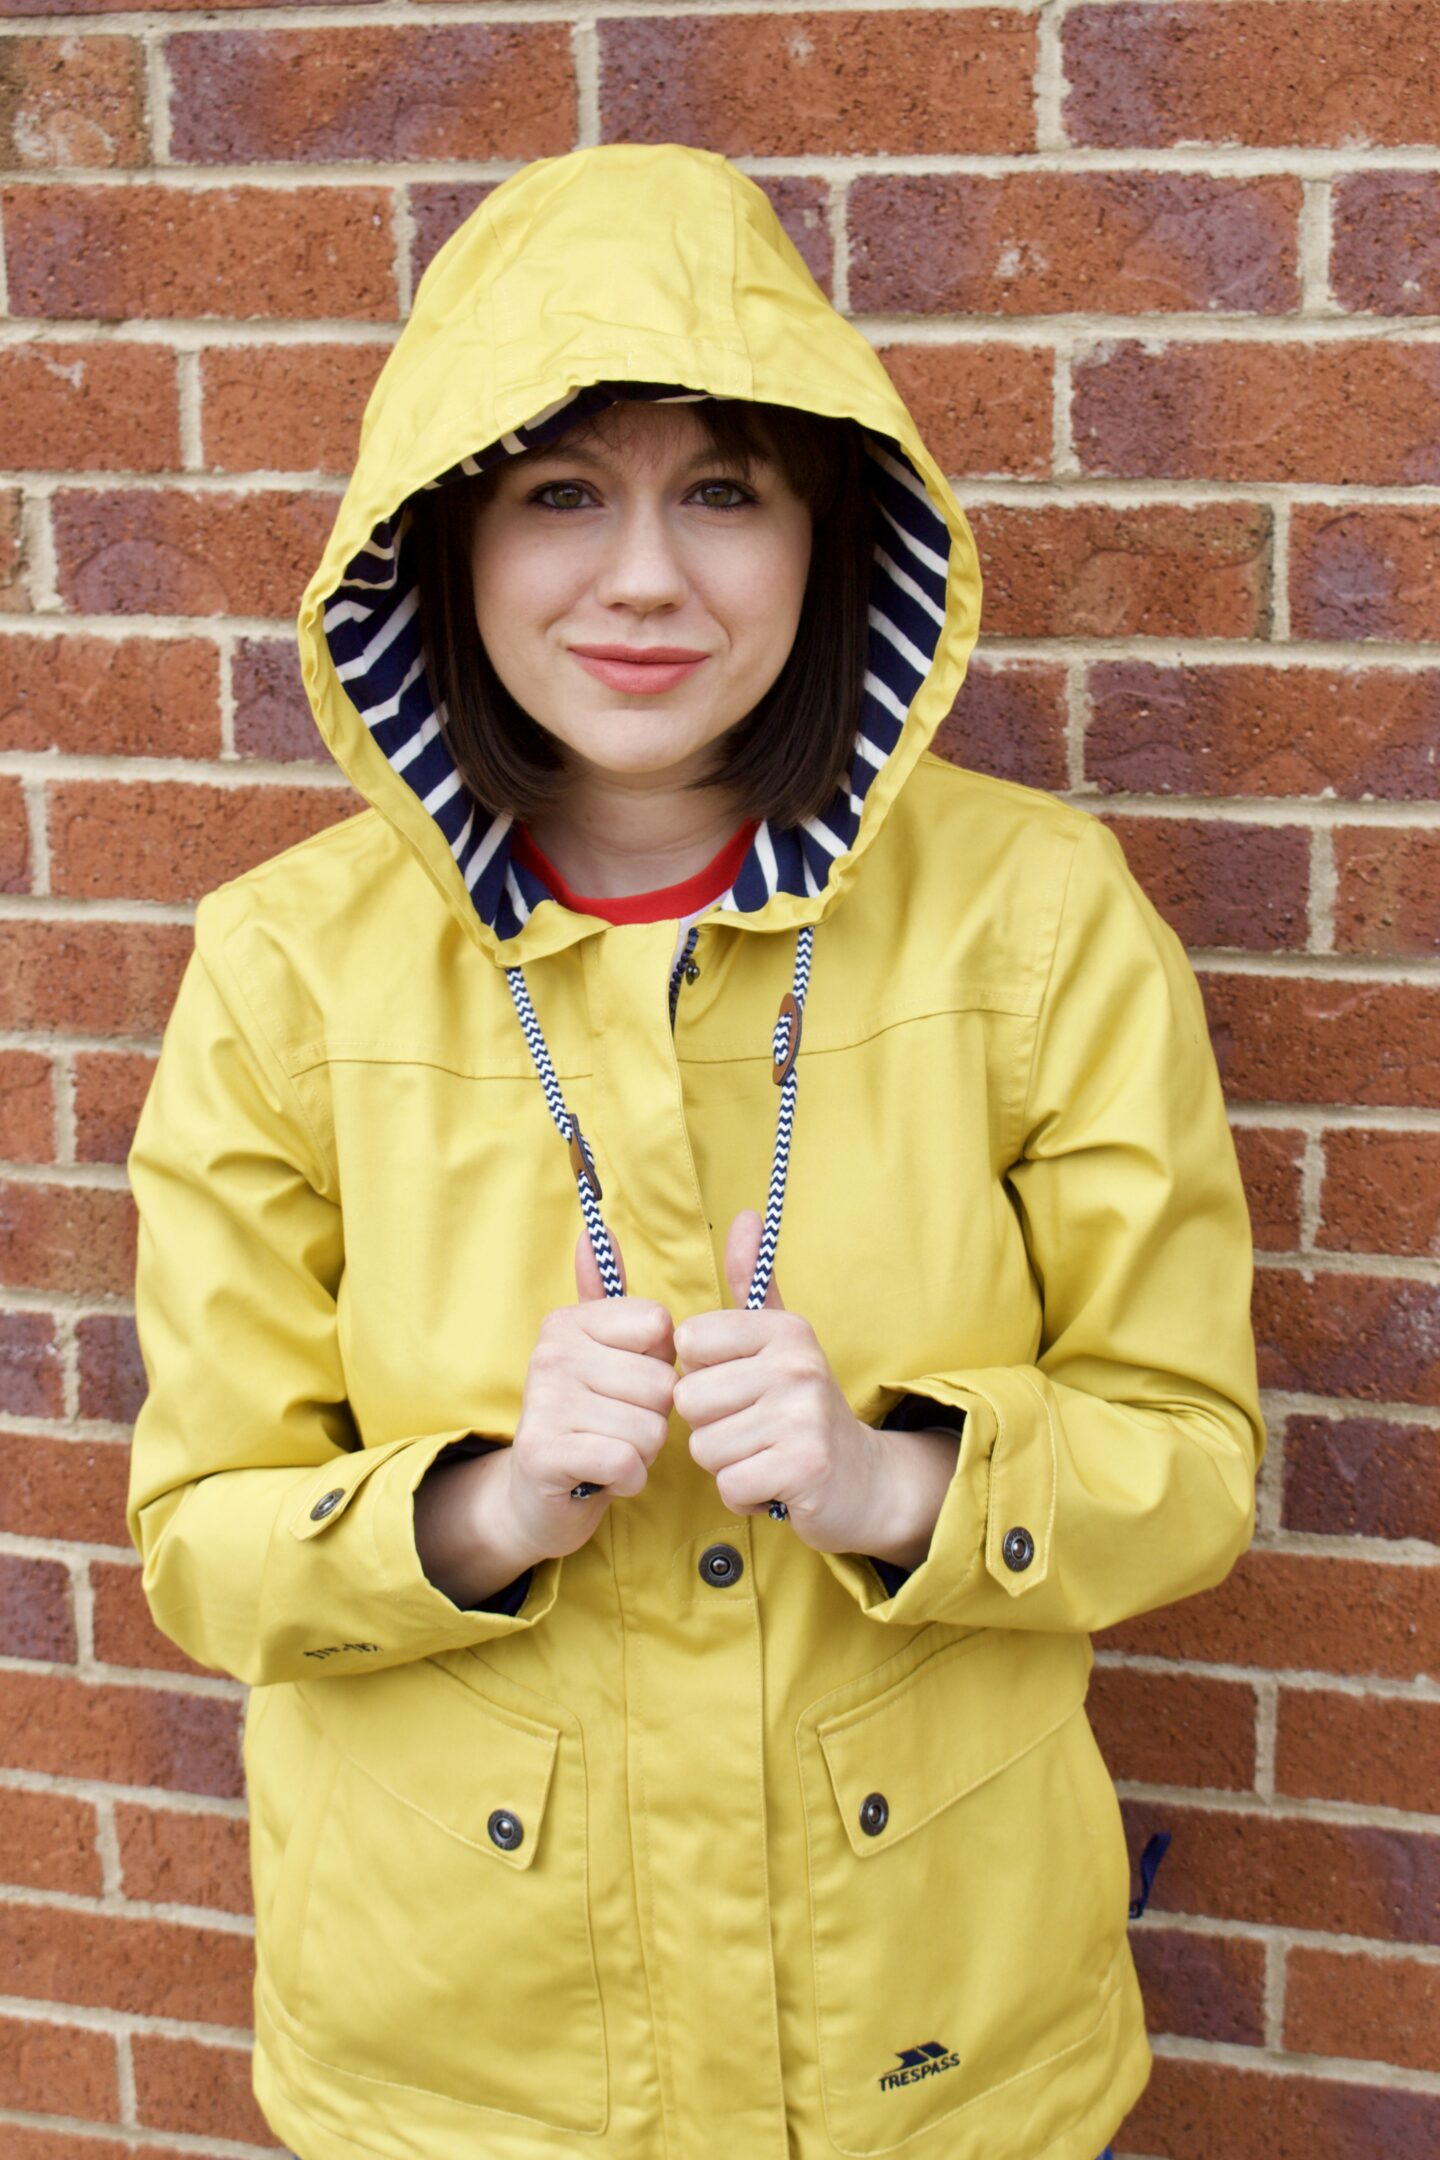 Trespass Seawater Women's Waterproof Jacket review